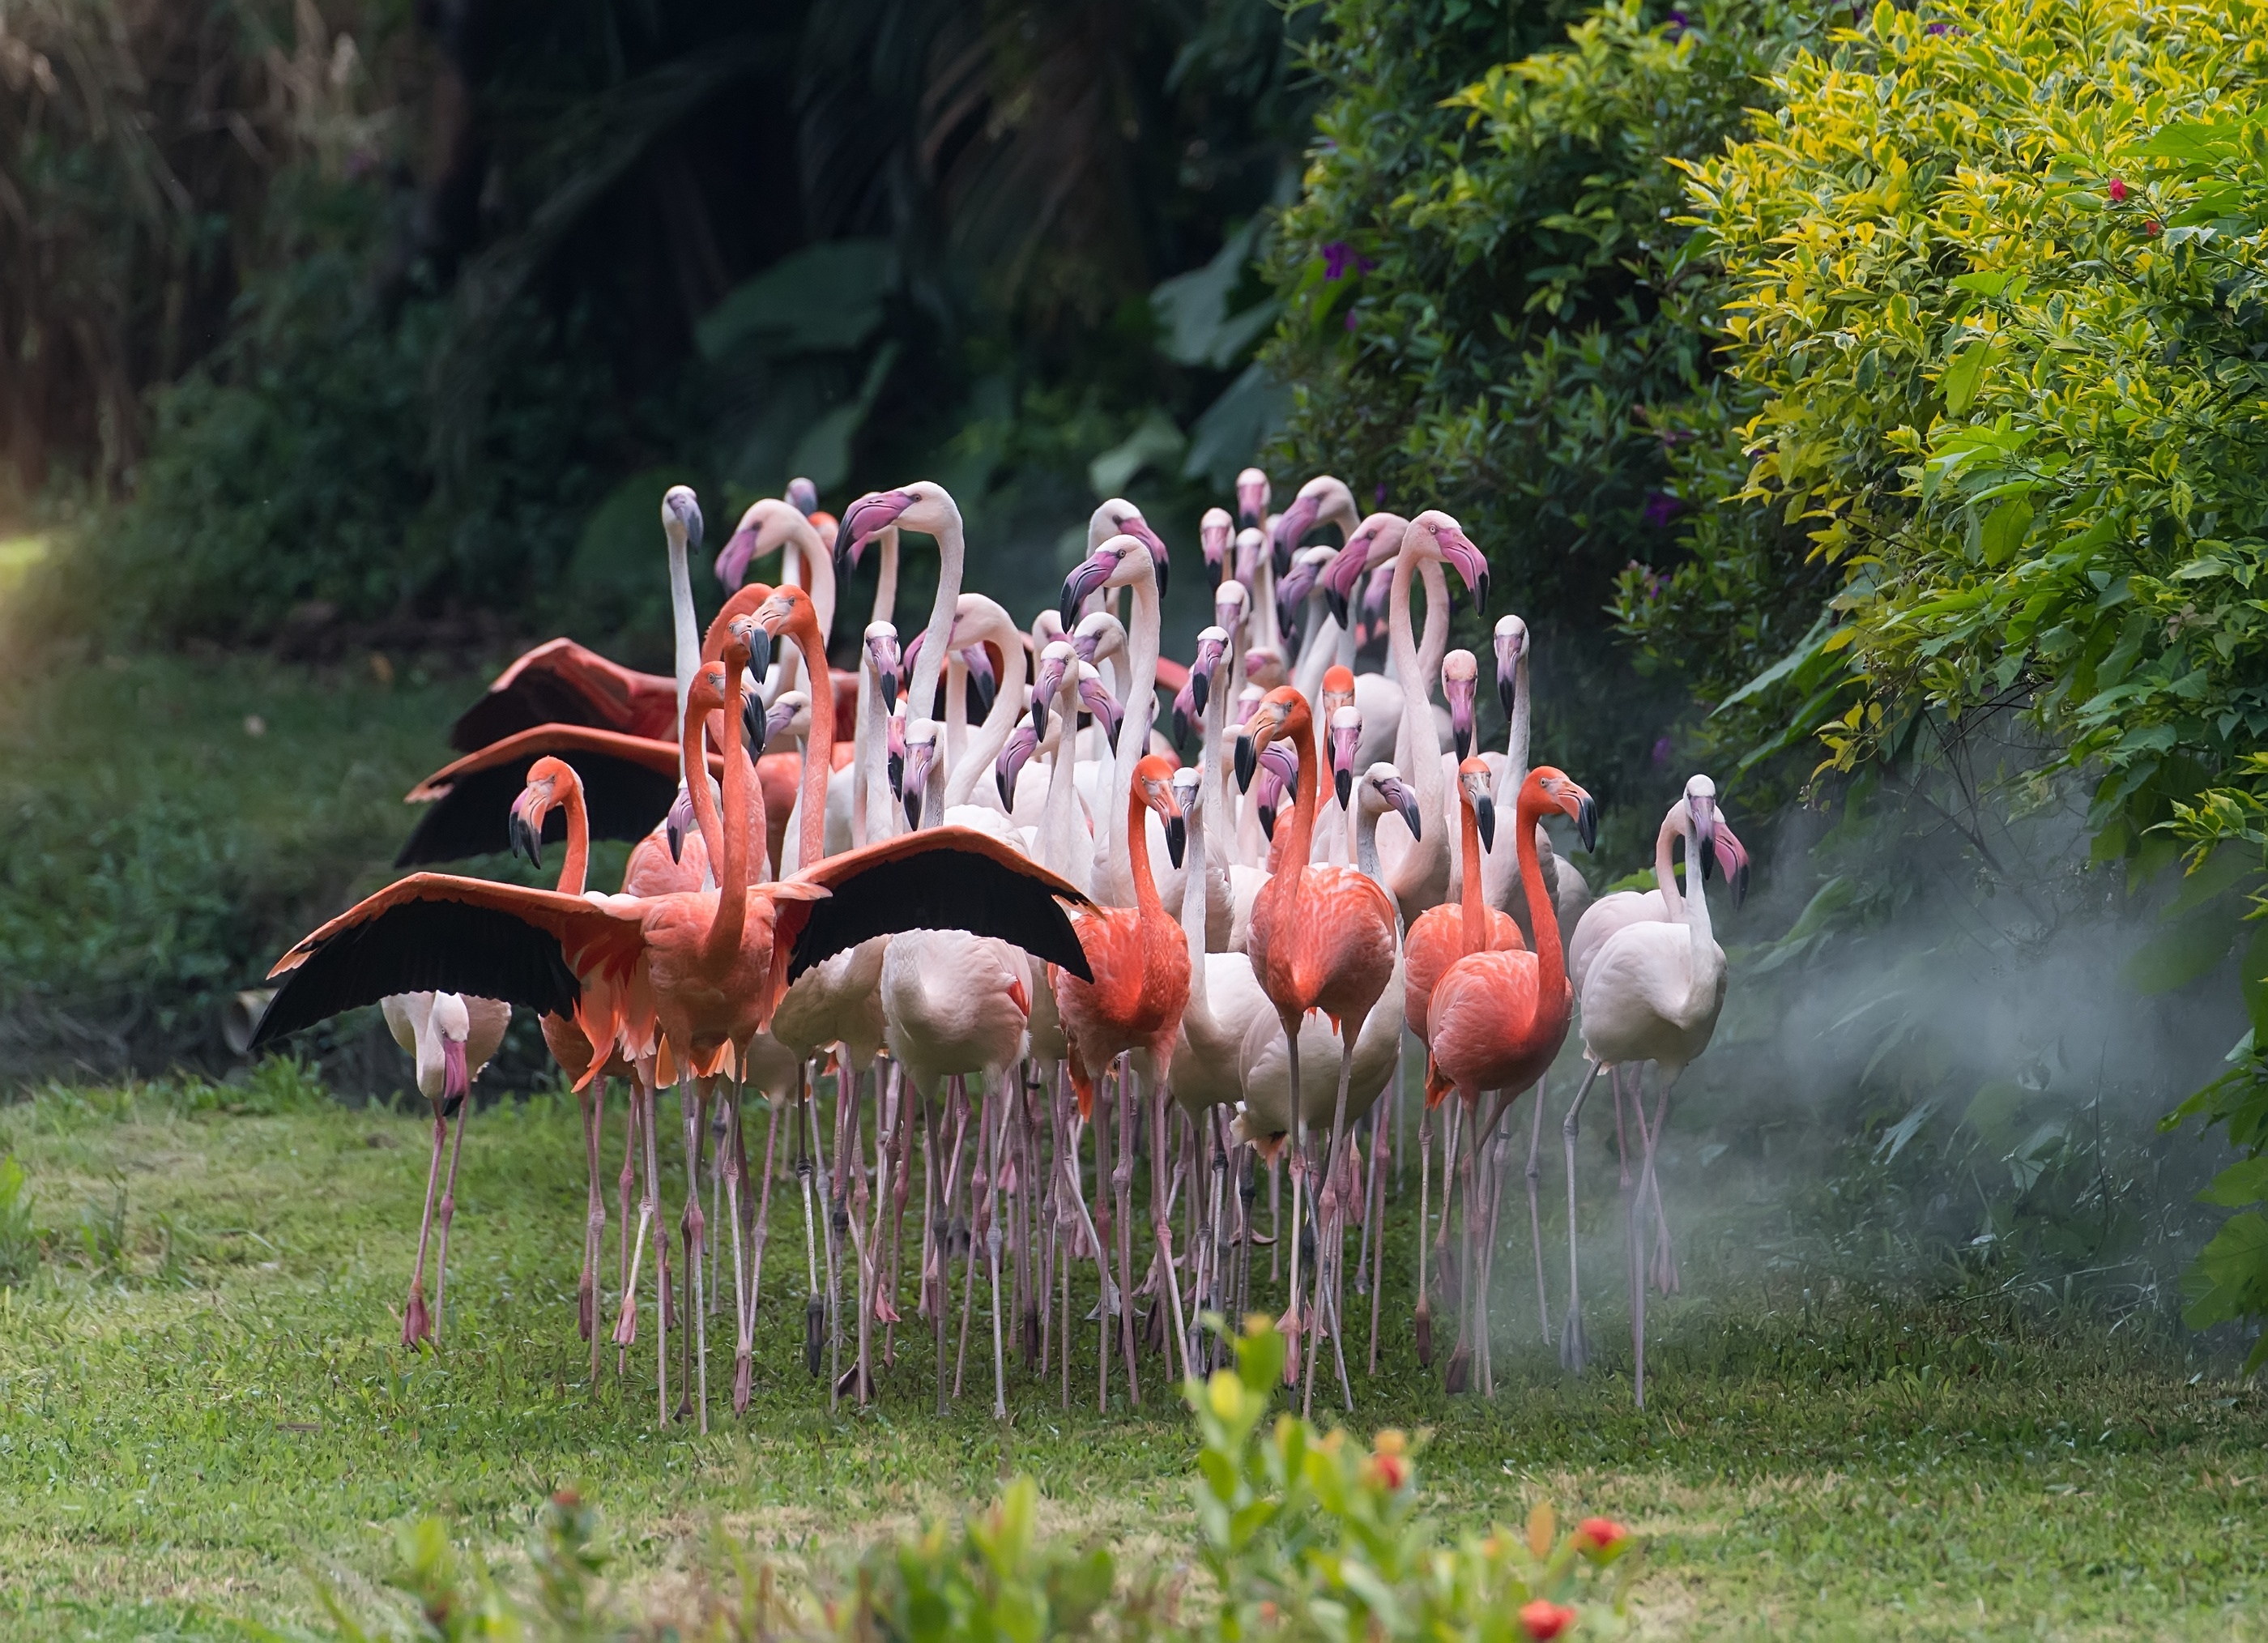 bigstock-Flamingo-birds-standing-in-lak-206190913.jpg